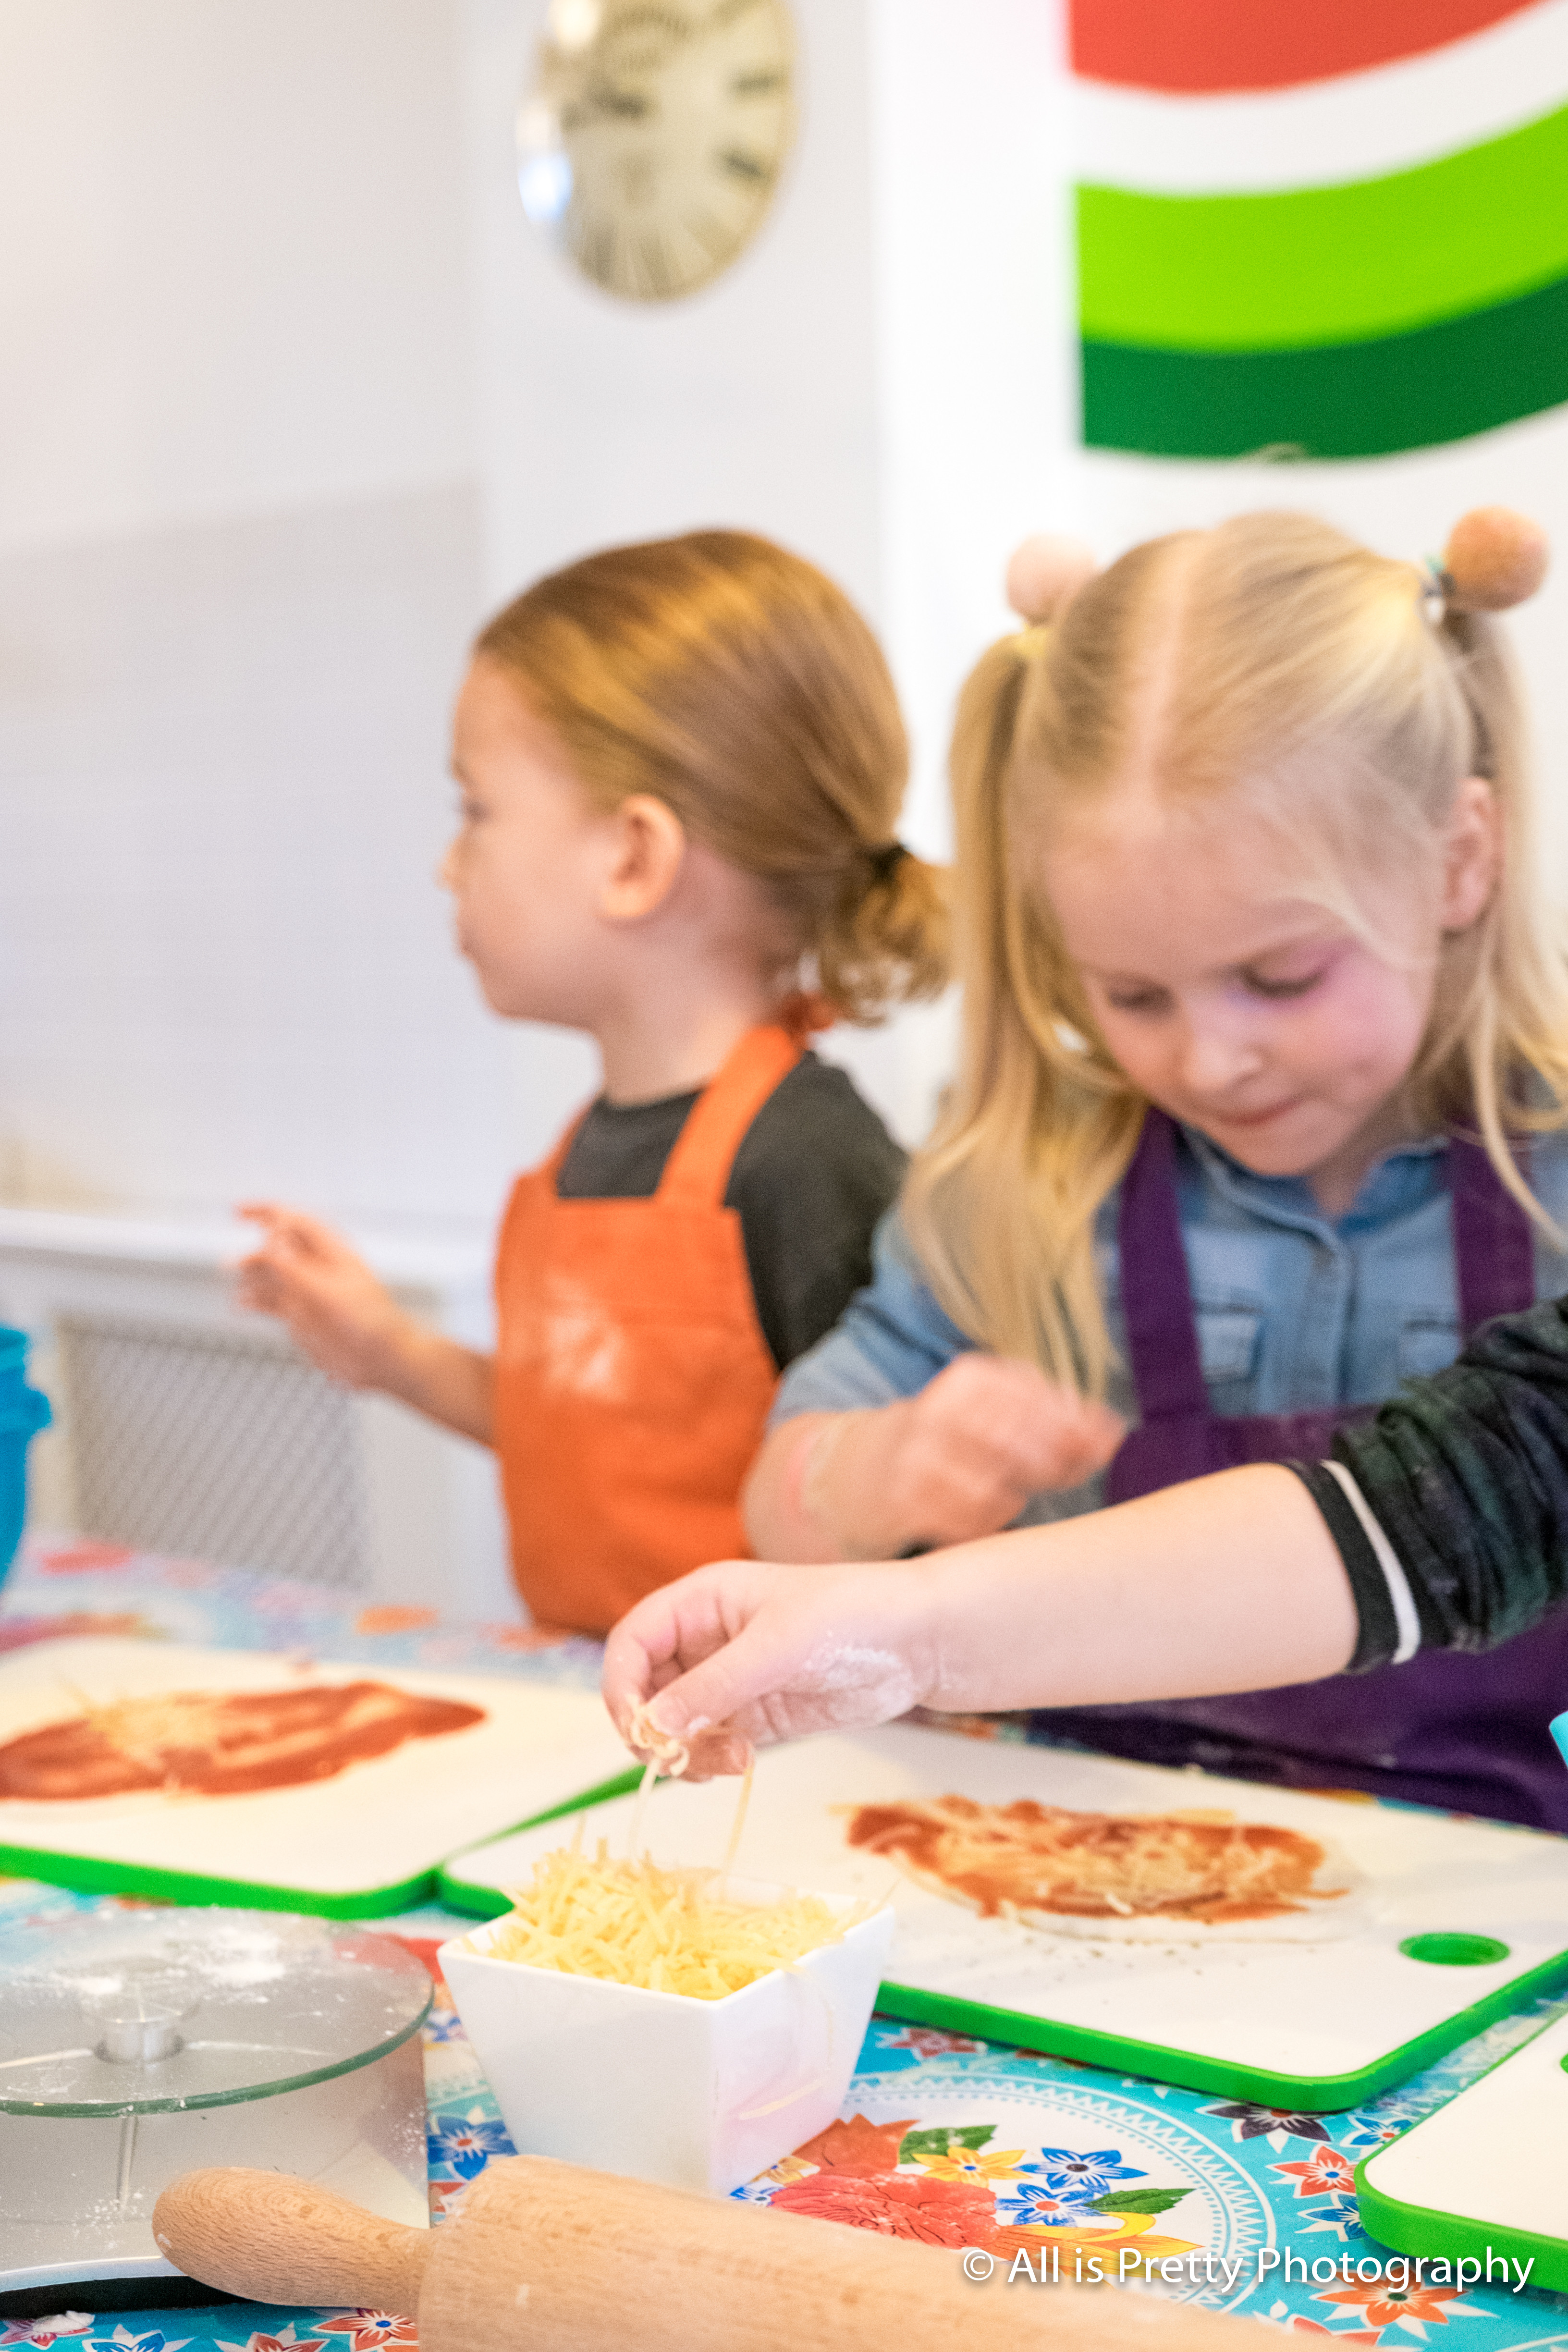 Sweet and Savoury Party (4-6 years old)